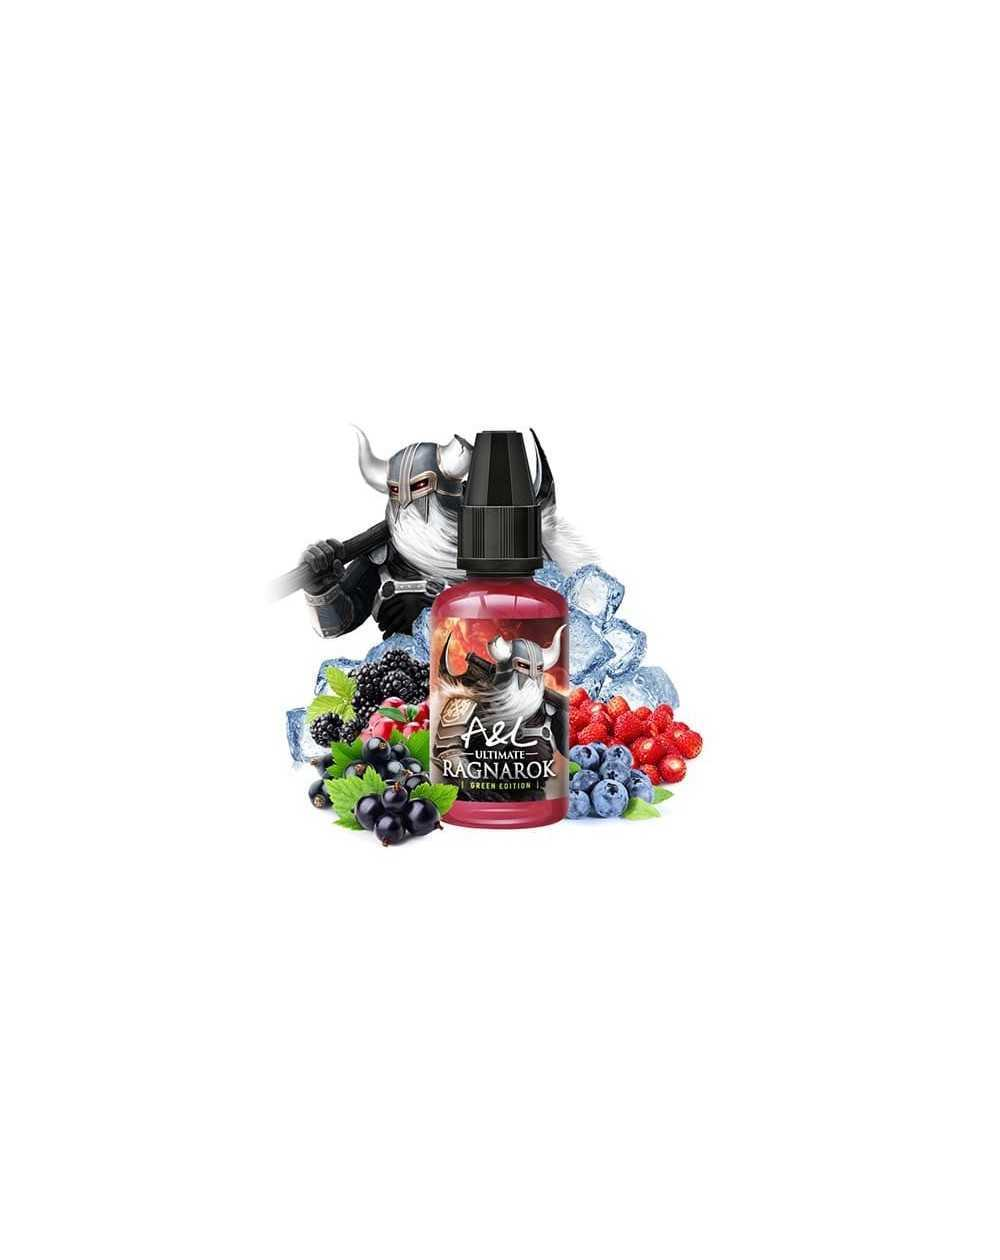 Concentrated aroma Ragnarok 30ml - Ultimate-1